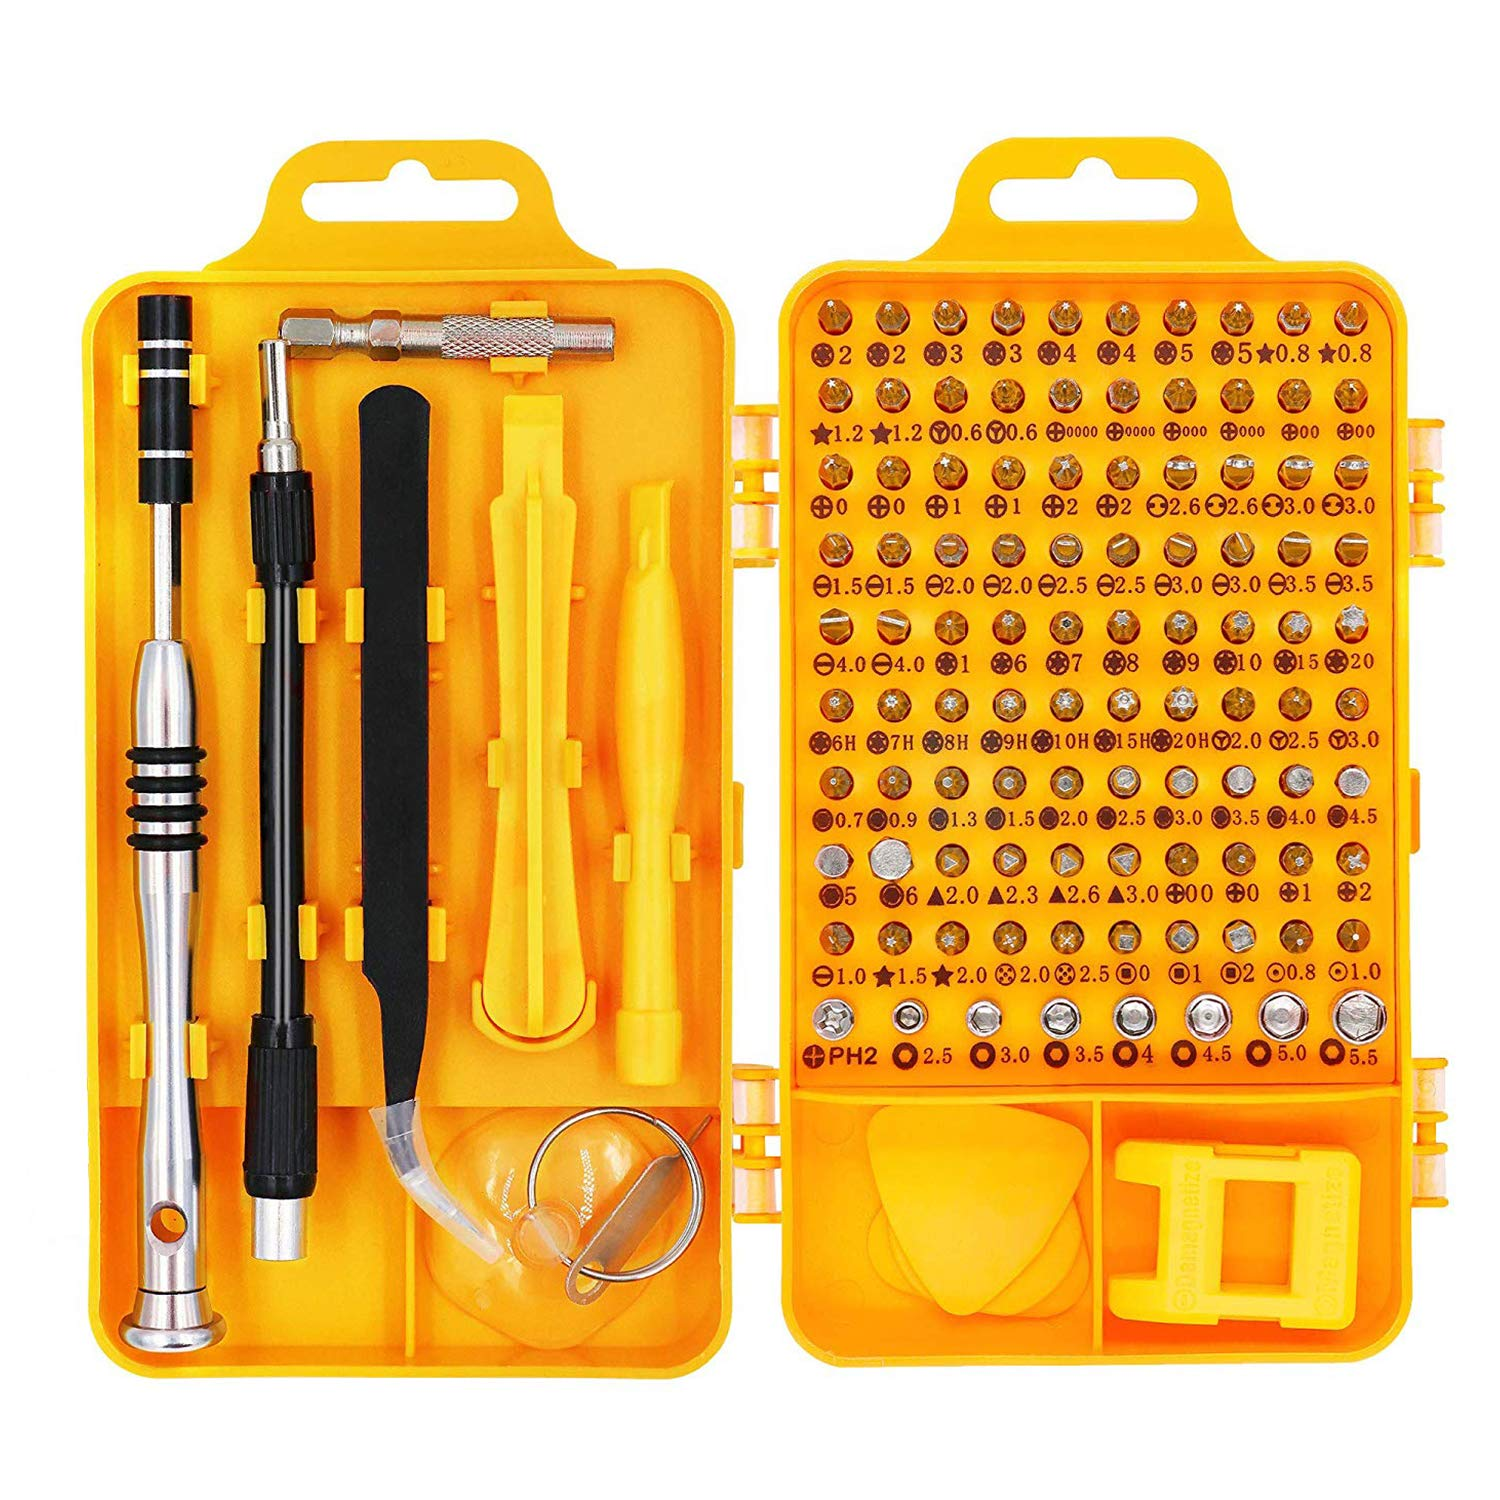 Secure Creates To Keep Away From Finest Magnetic Screwdriver Sets